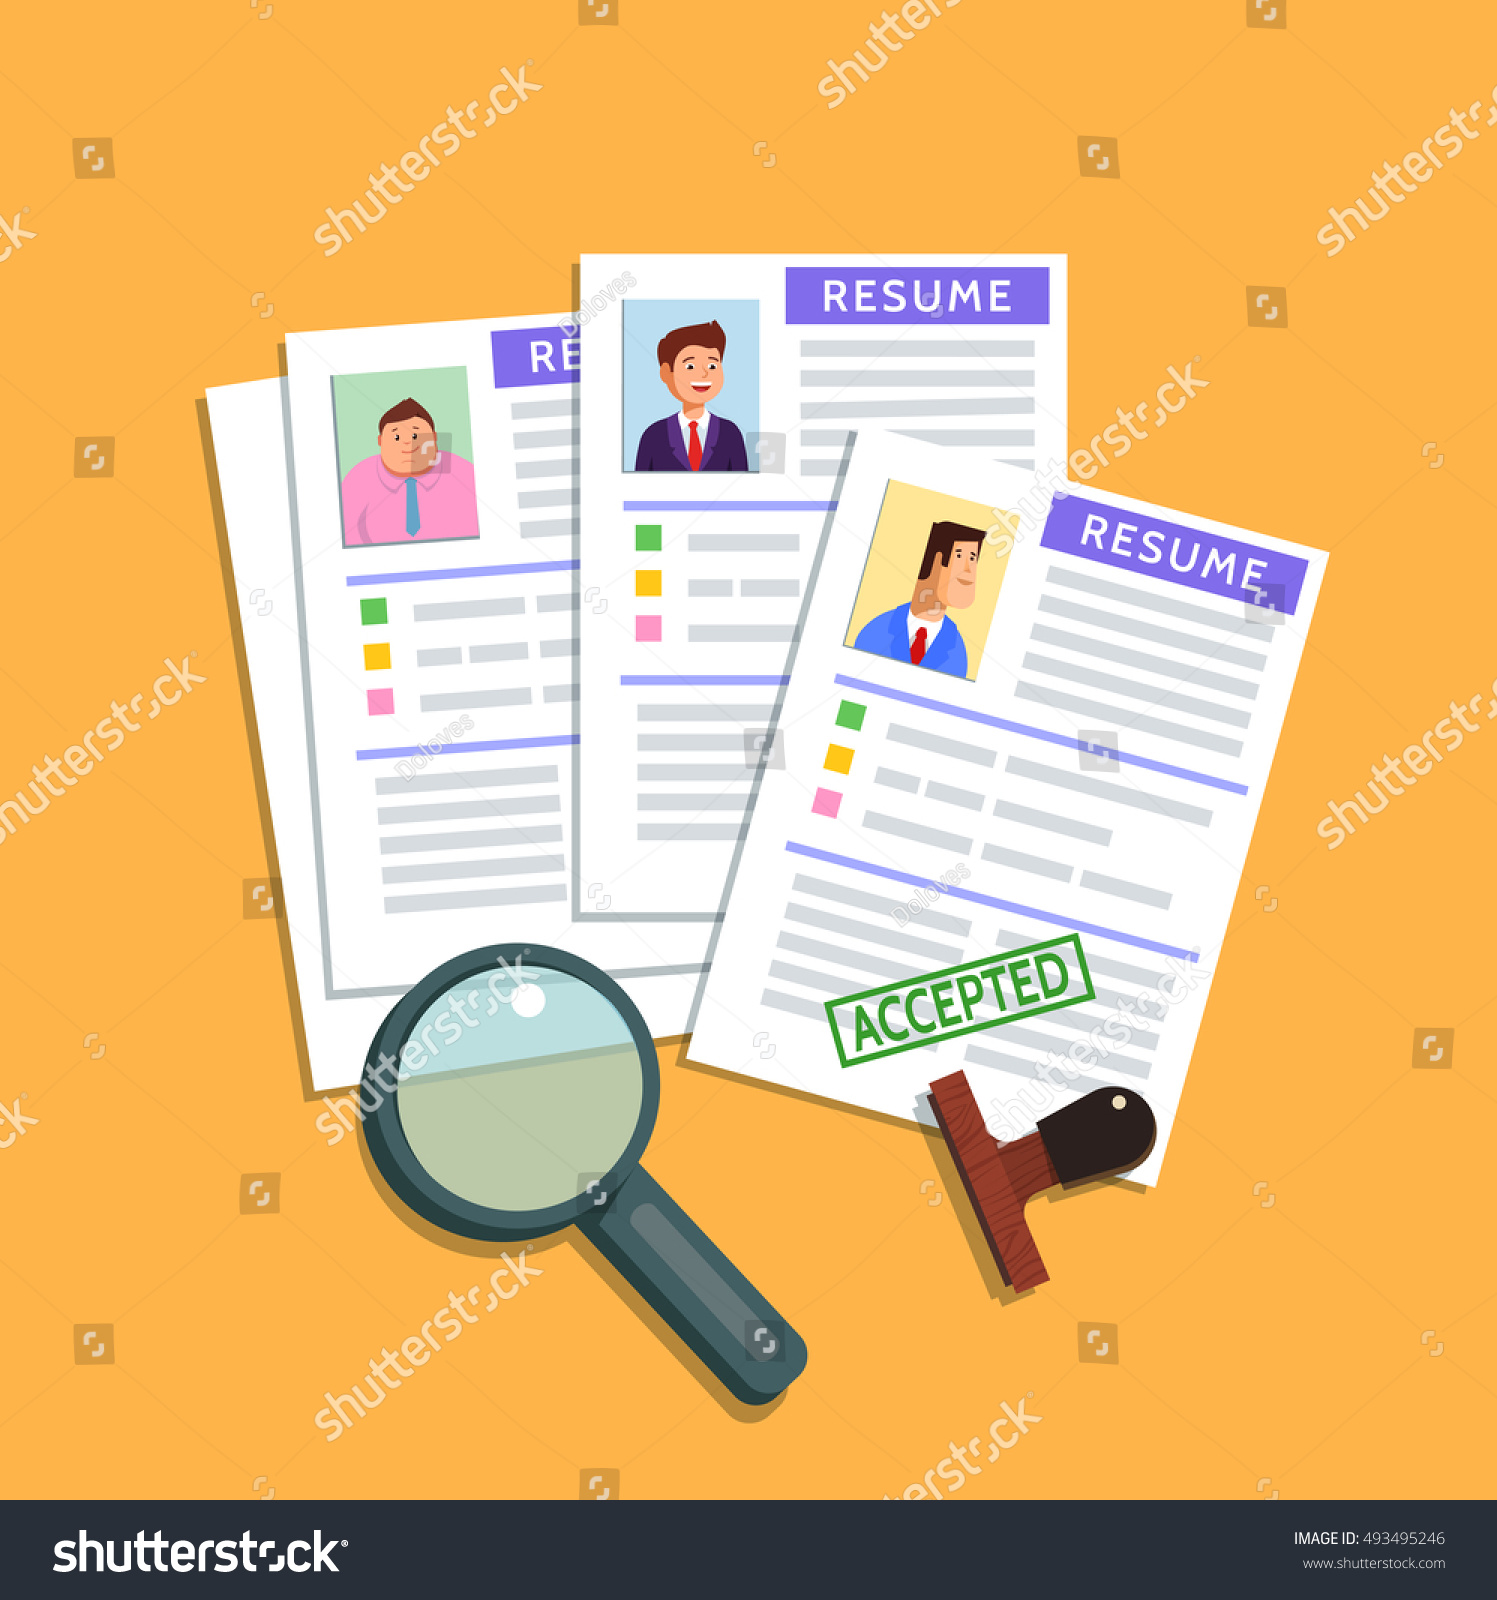 vector flat illustration resume cv icon stock vector